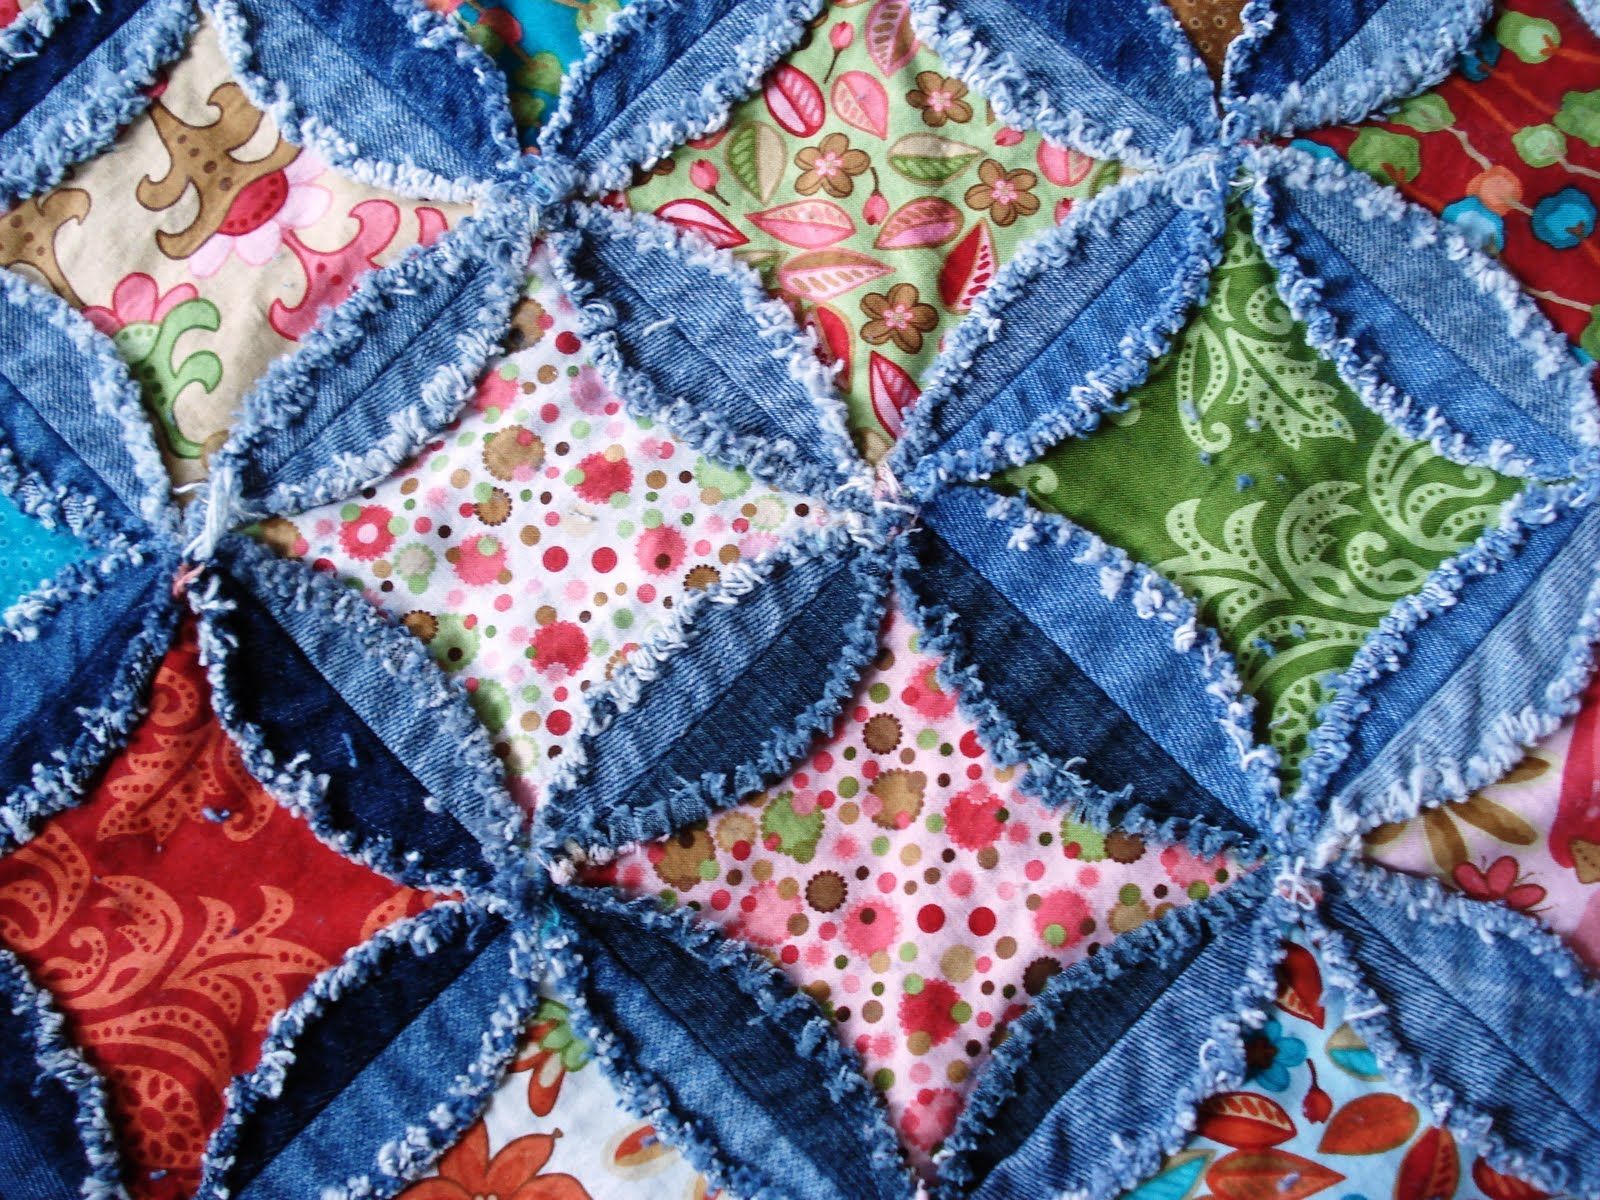 cathedral rag quilt | Quilting | Pinterest | Rag quilt, Cathedrals ... : cathedral window rag quilt - Adamdwight.com